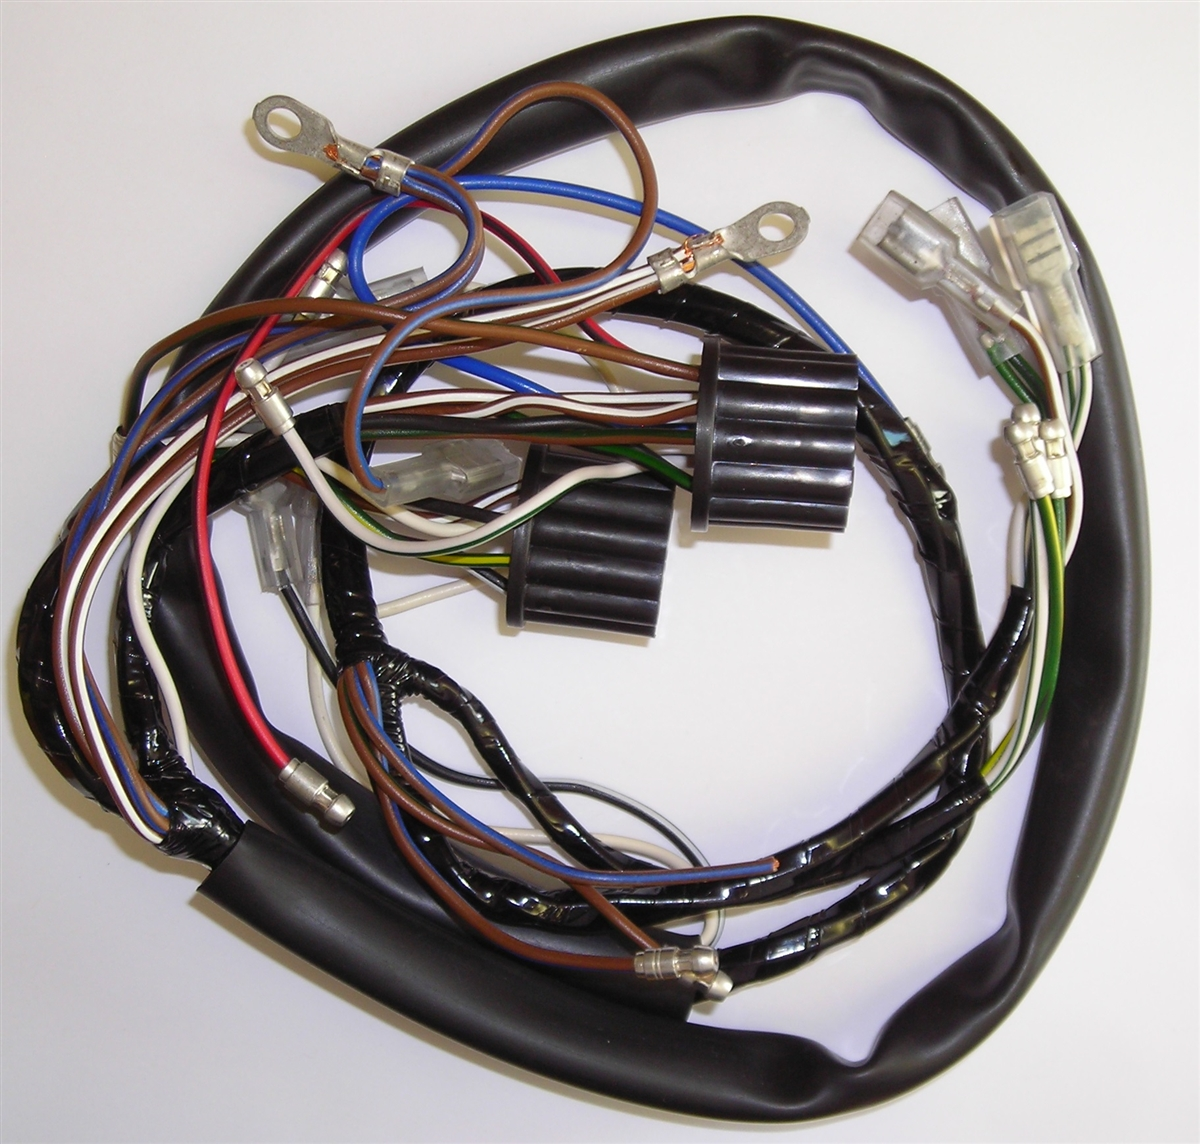 small resolution of triumph motorcycle wiring harness rh britishwiring com motorcycle wiring harness connectors motorcycle wiring harness rebuilders